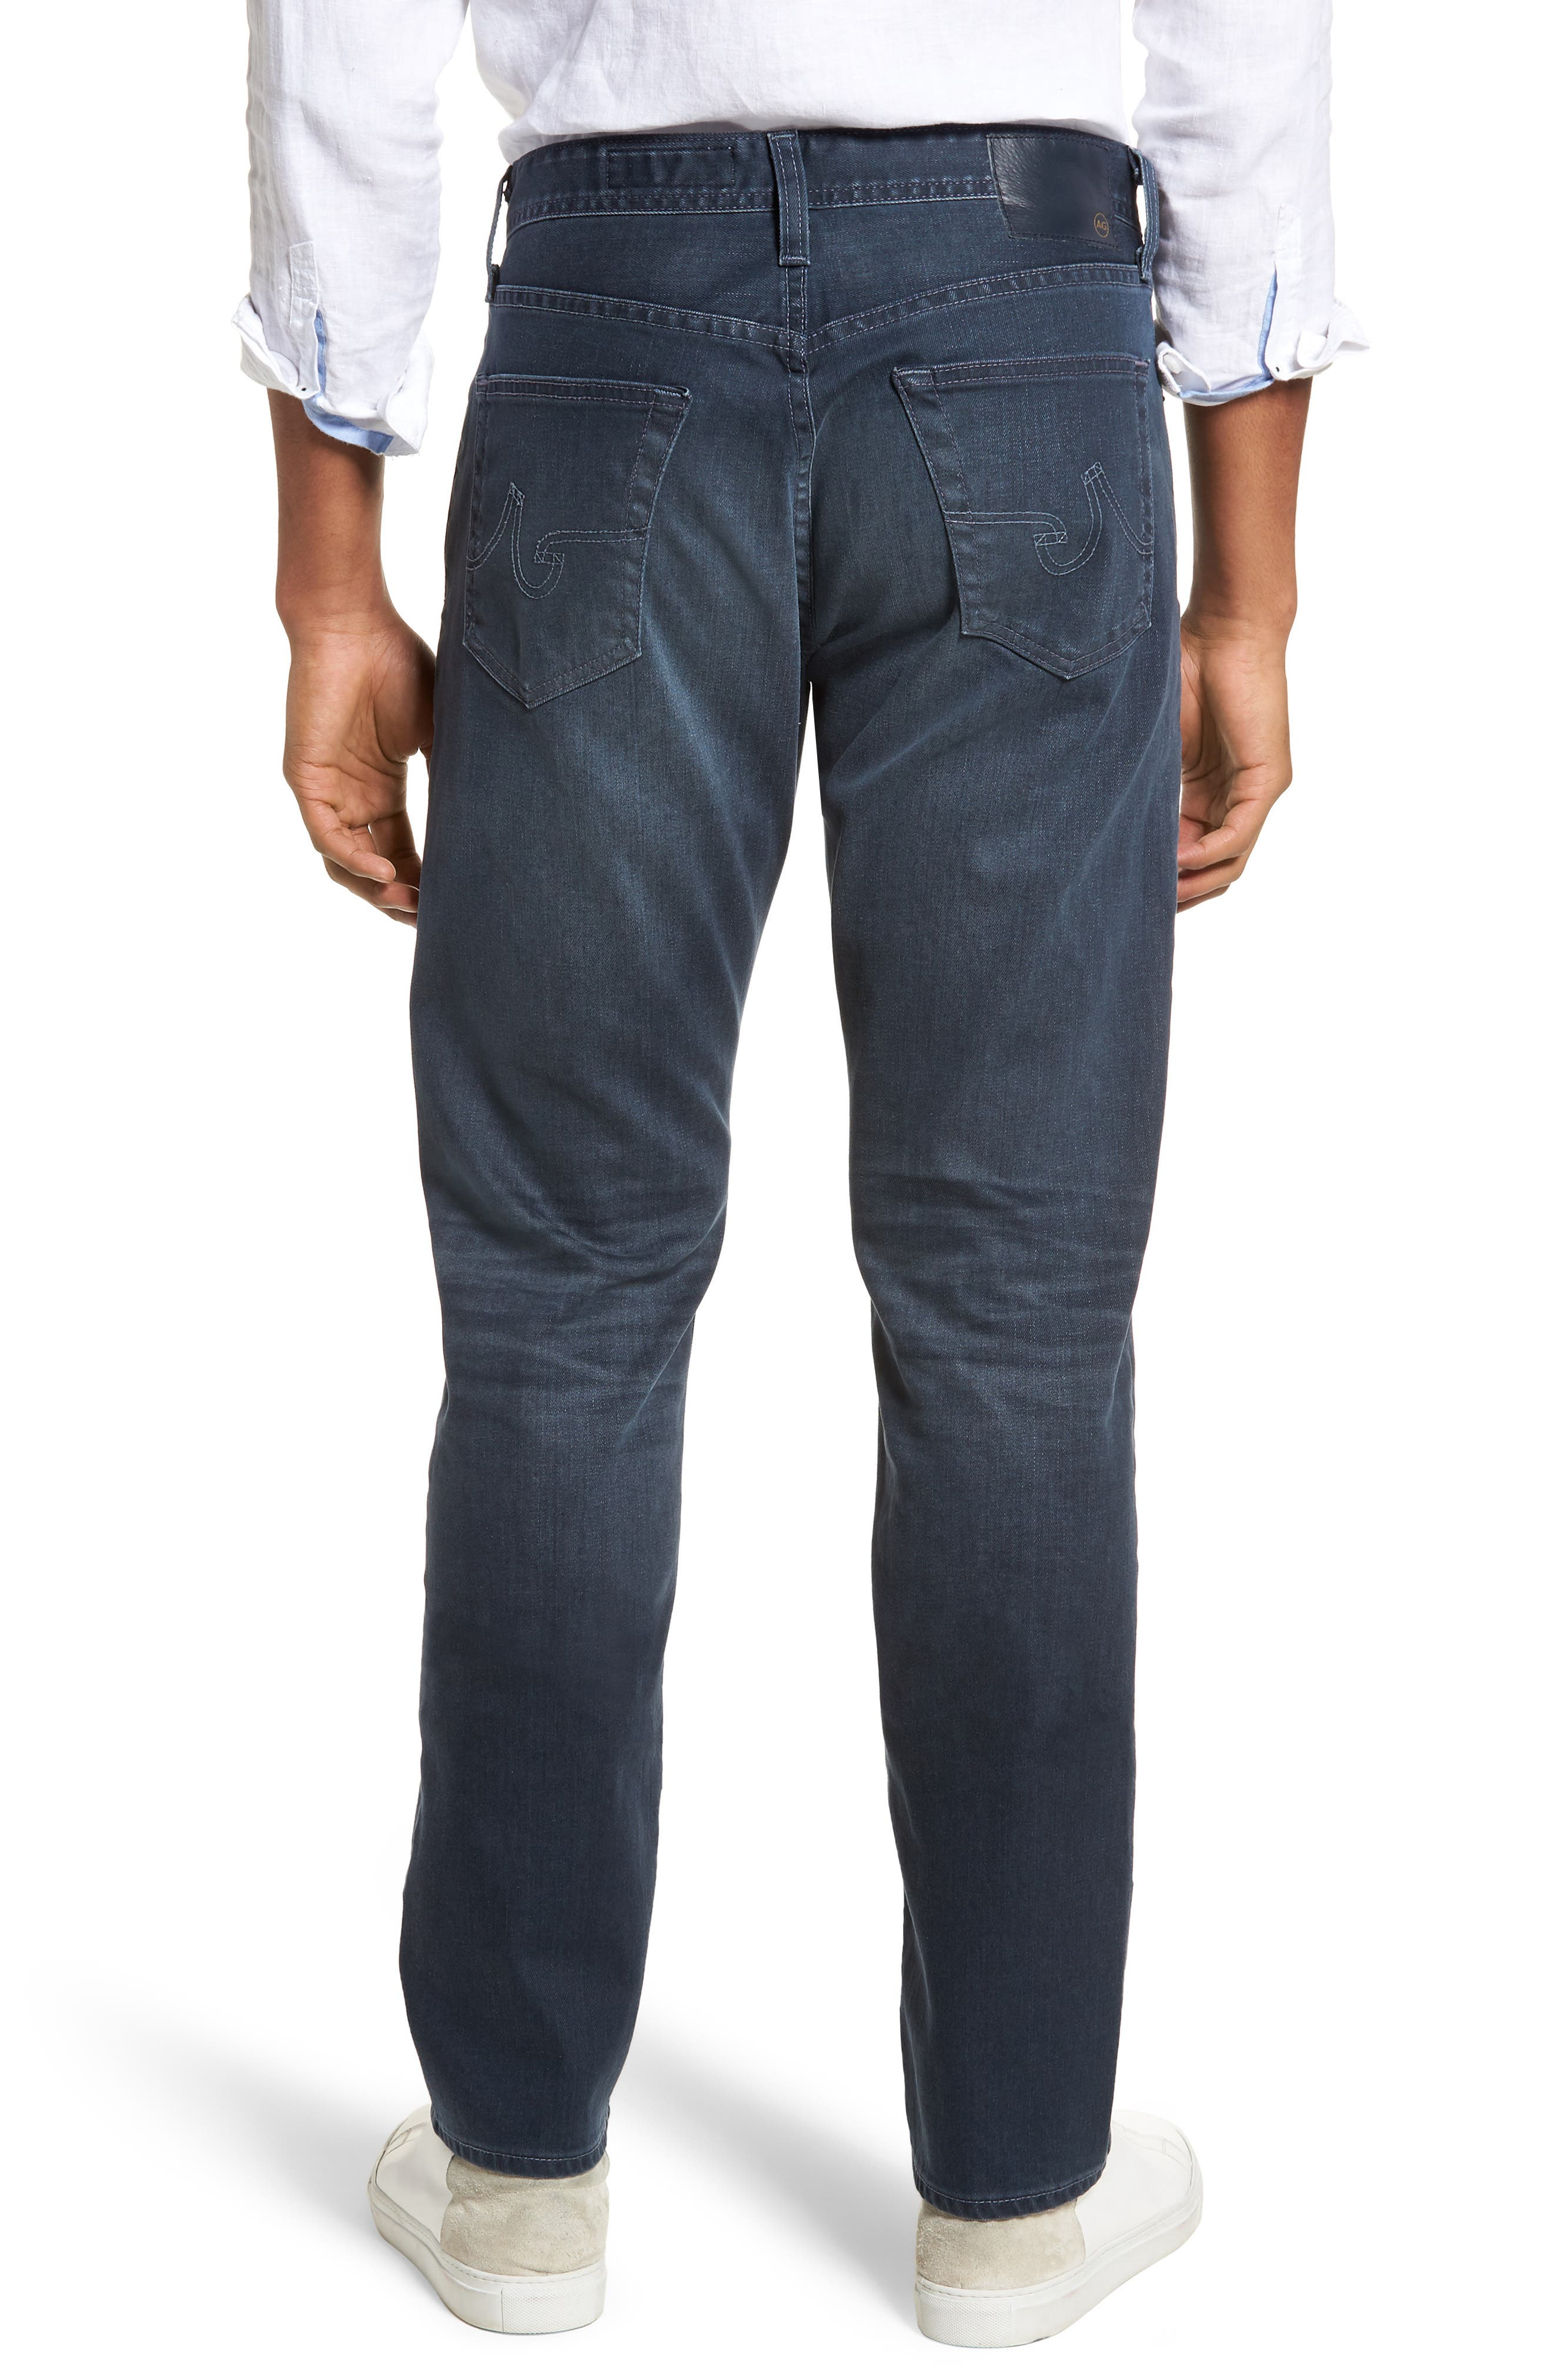 Everett Slim Straight Leg Jeans,                             Alternate thumbnail 2, color,                             9 YEARS TIDEPOOL